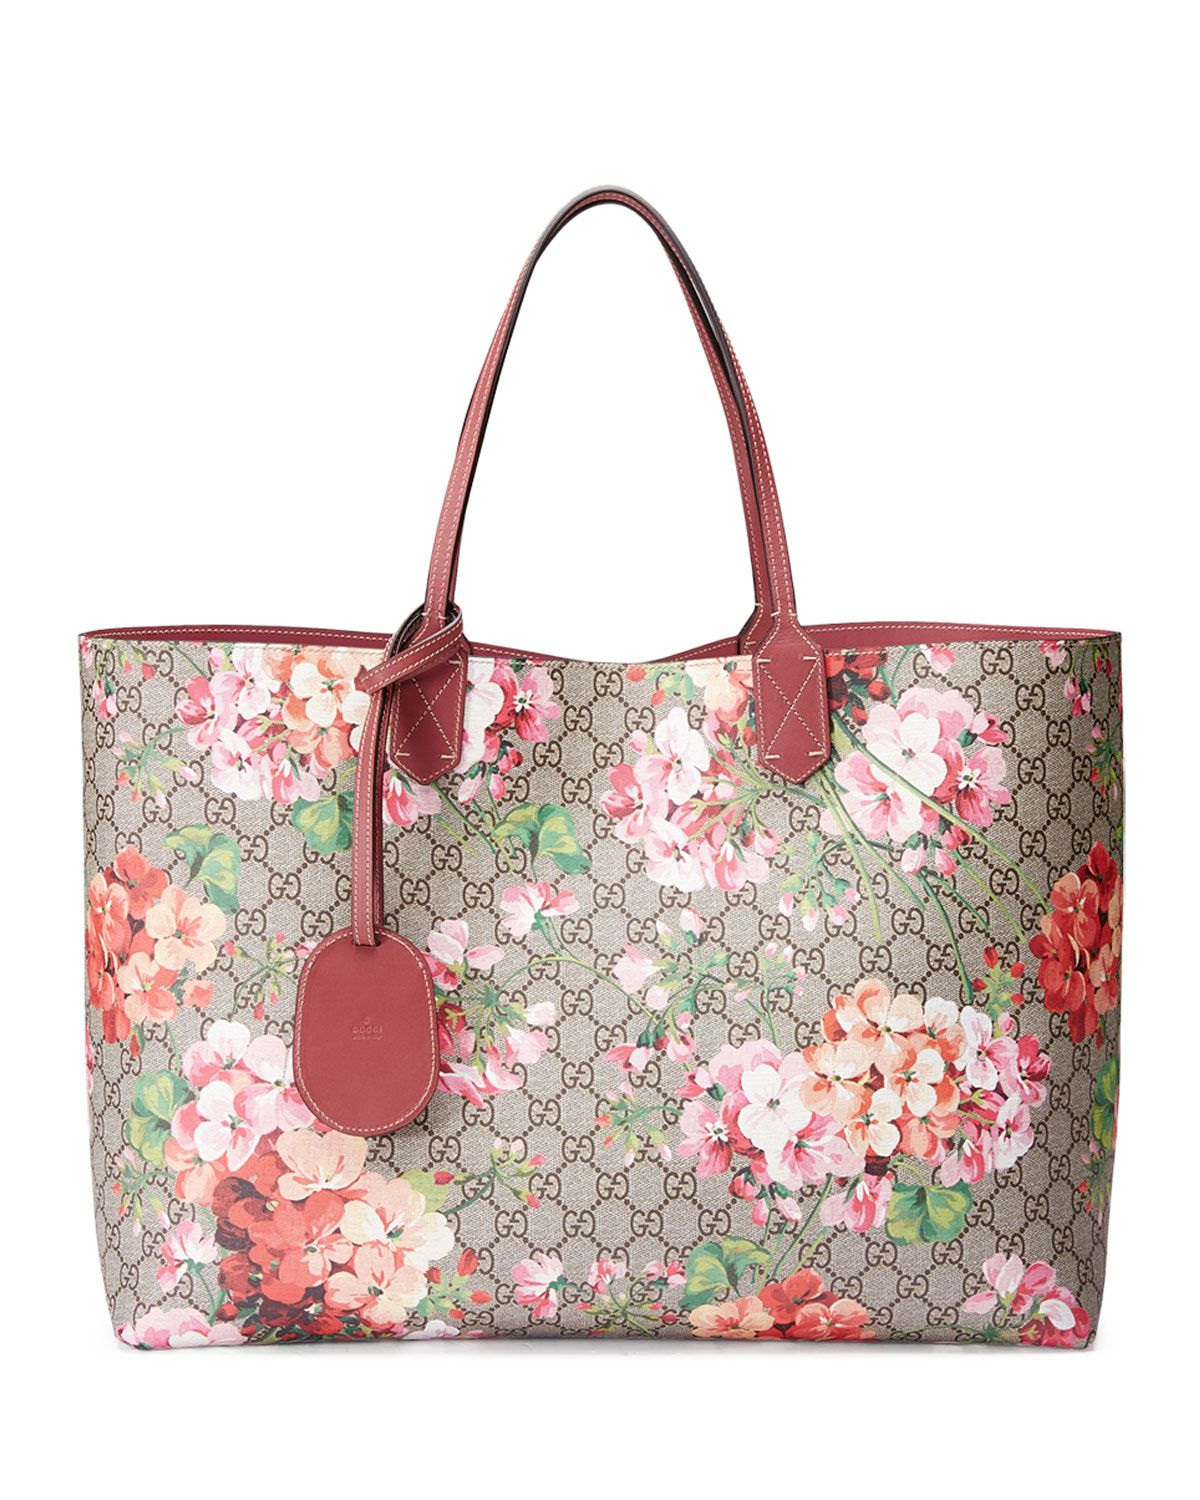 b6033759a0c GG Blooms Large Reversible Leather Tote Bag Multicolor